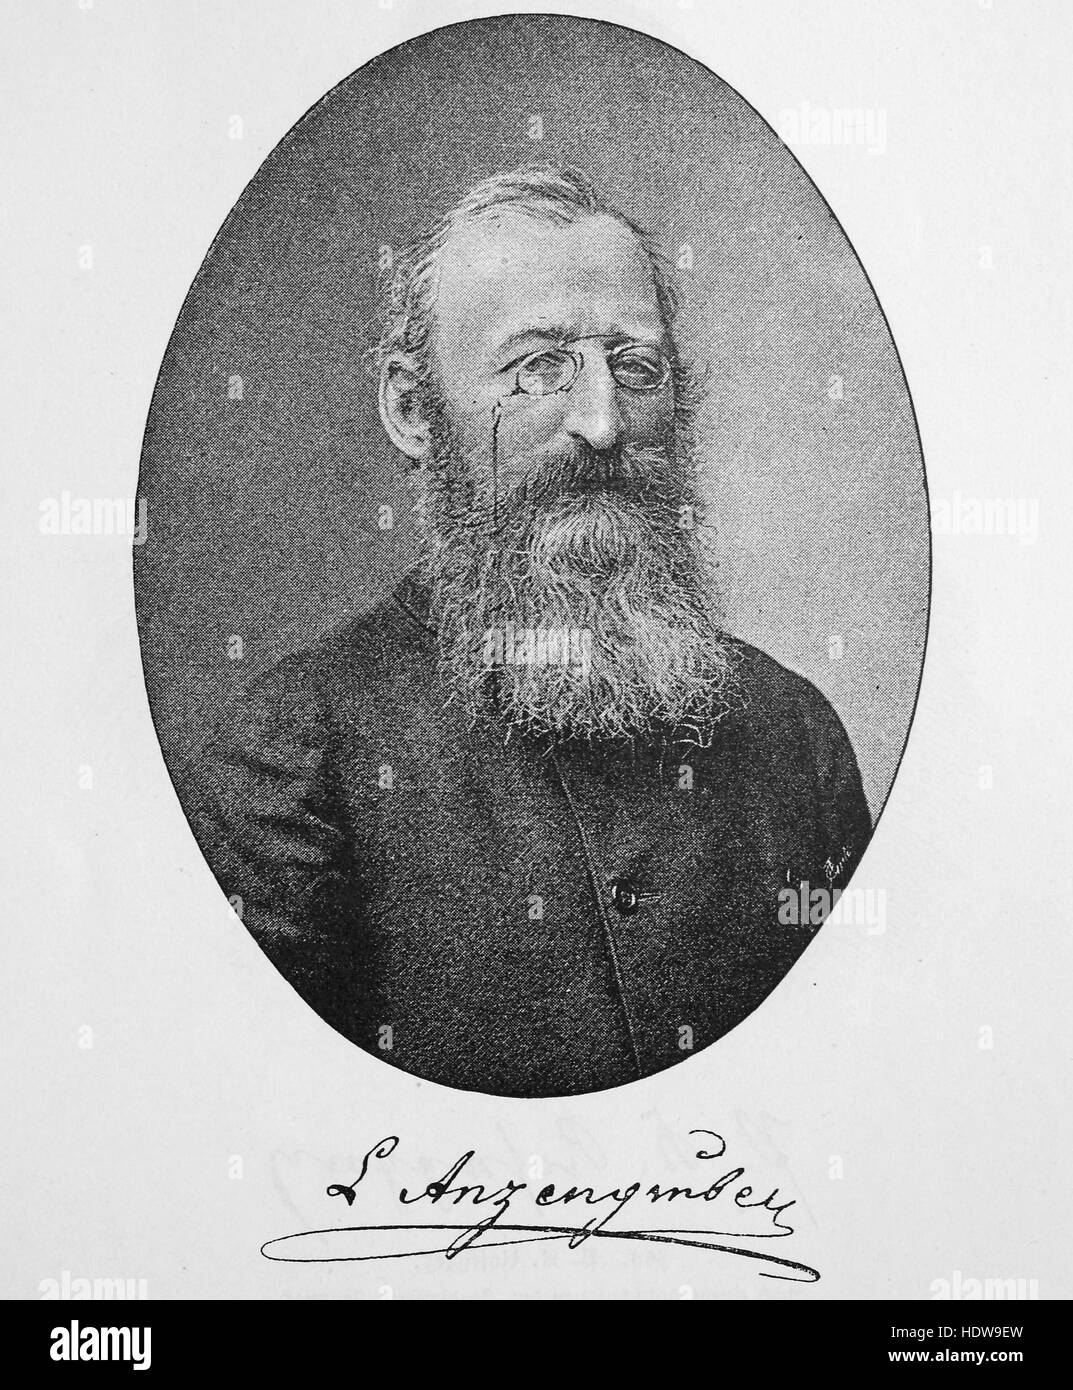 Ludwig Anzengruber, 1839-1889, an Austrian dramatist, novelist and poet, woodcut from the year 1880 - Stock Image